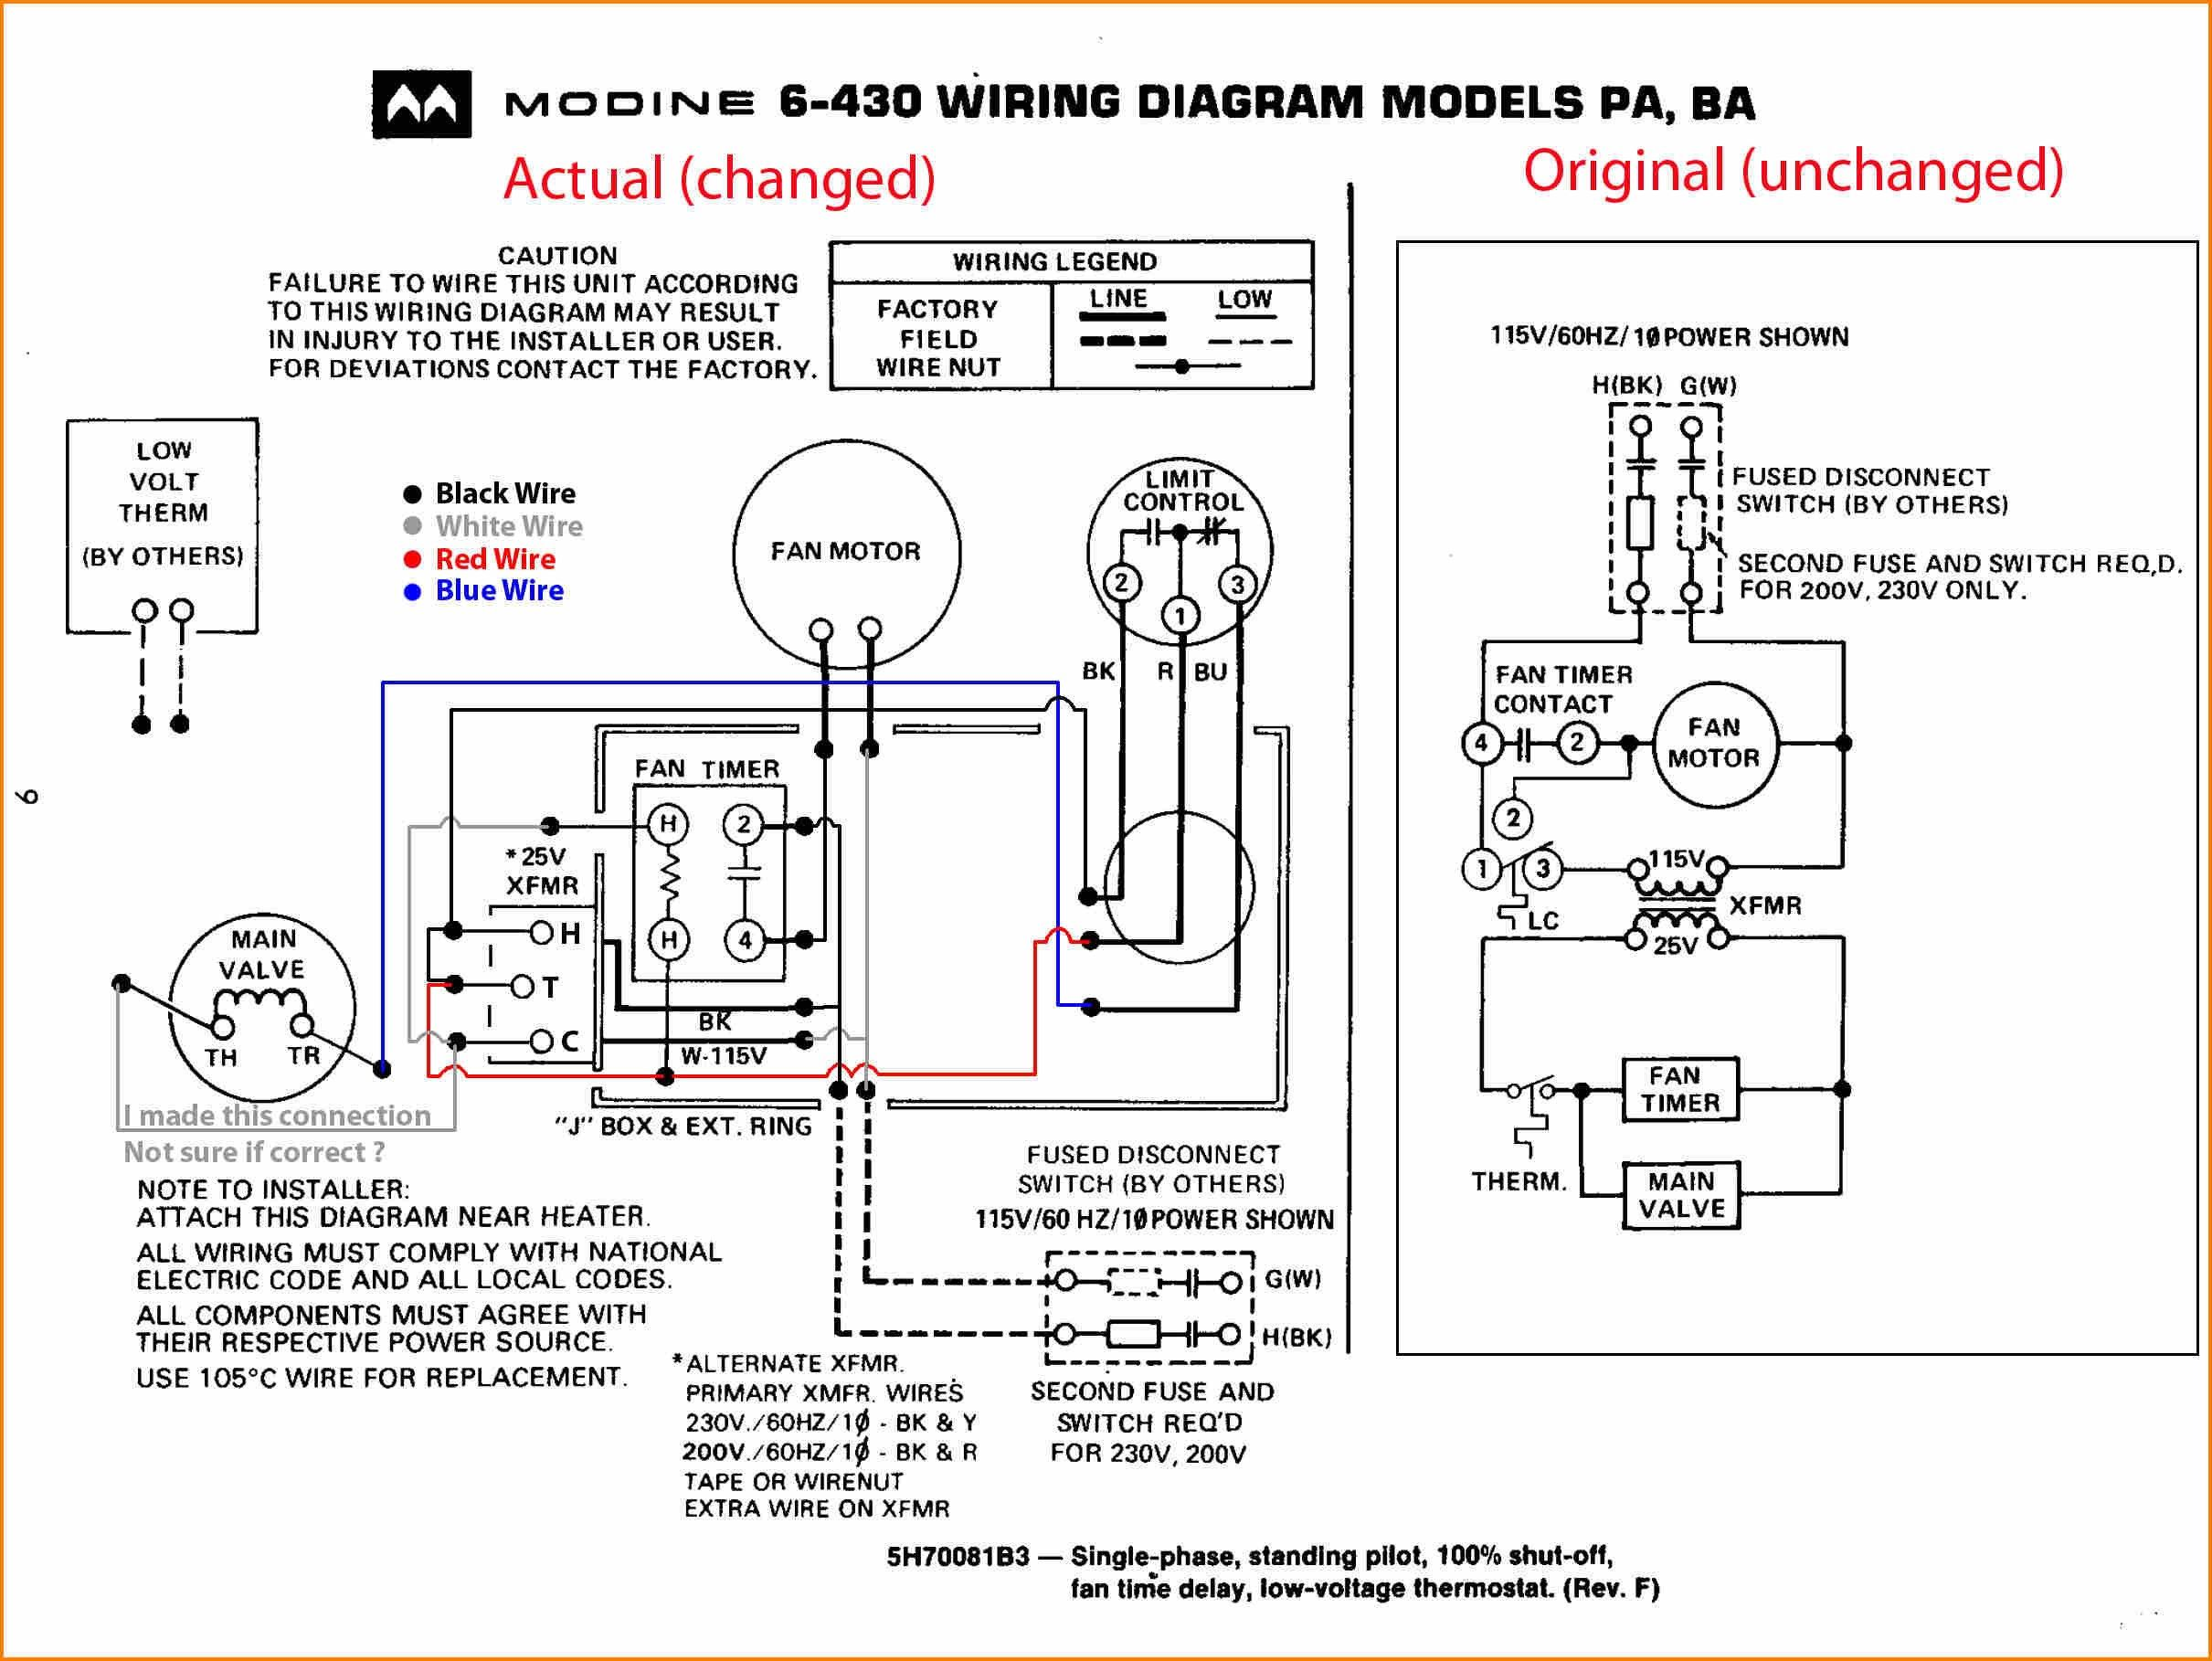 New Wiring Diagram For Ac To Furnace Diagram Diagramtemplate Diagramsample